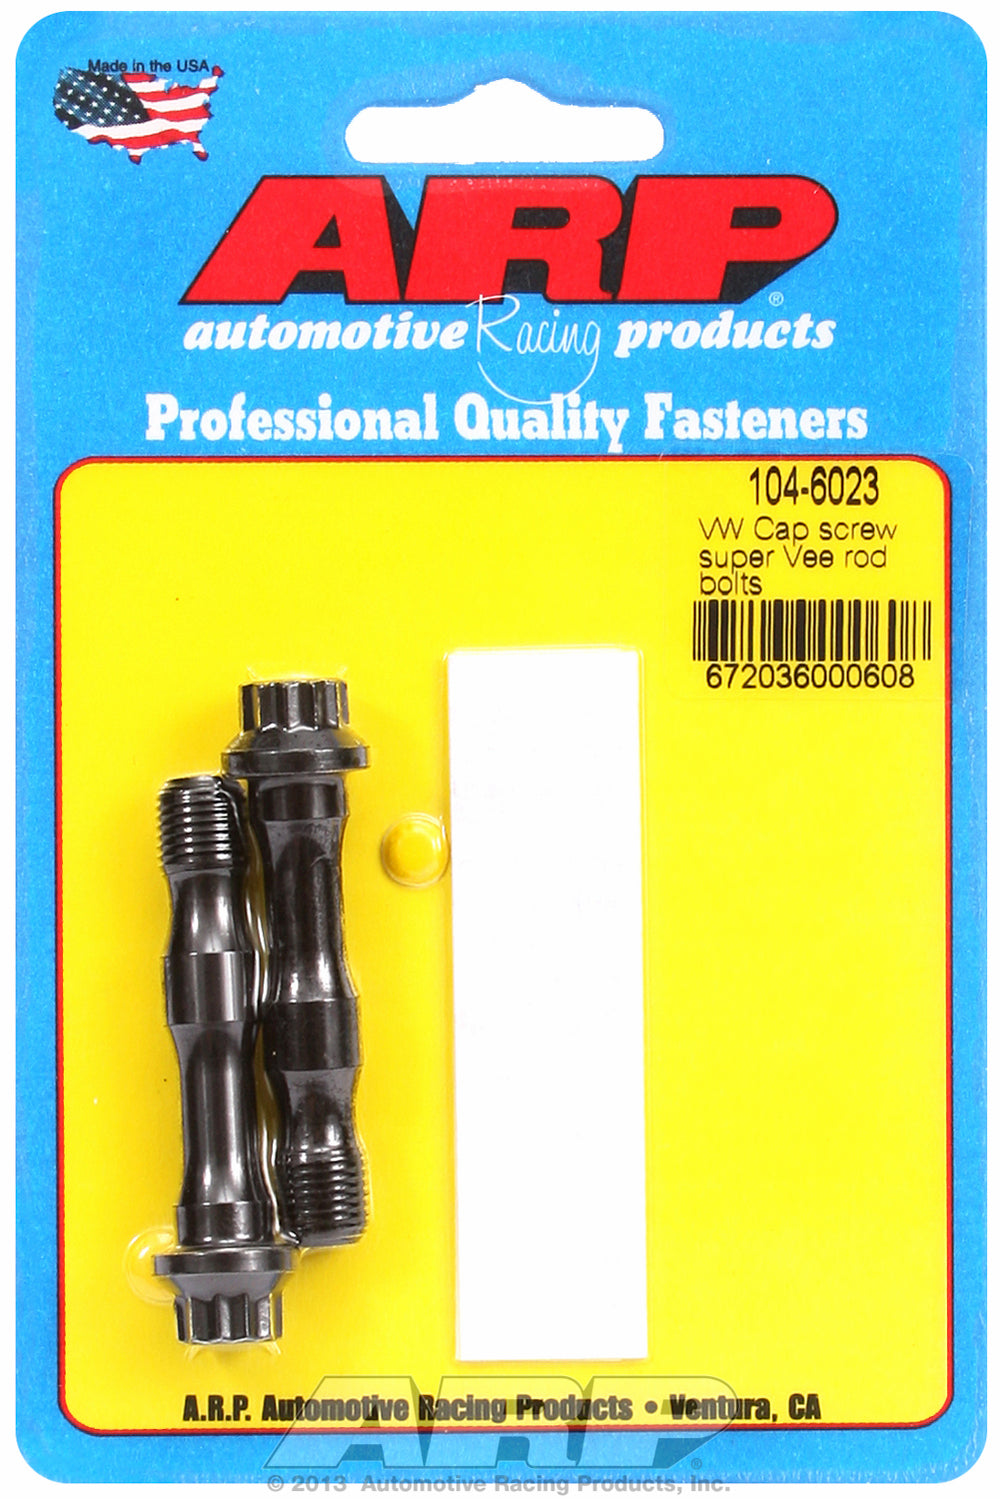 Pro Series ARP2000 2-pc Rod Bolt Kit for Volkswagen/Audi Super Vee (cap screw type) Audi-style rod